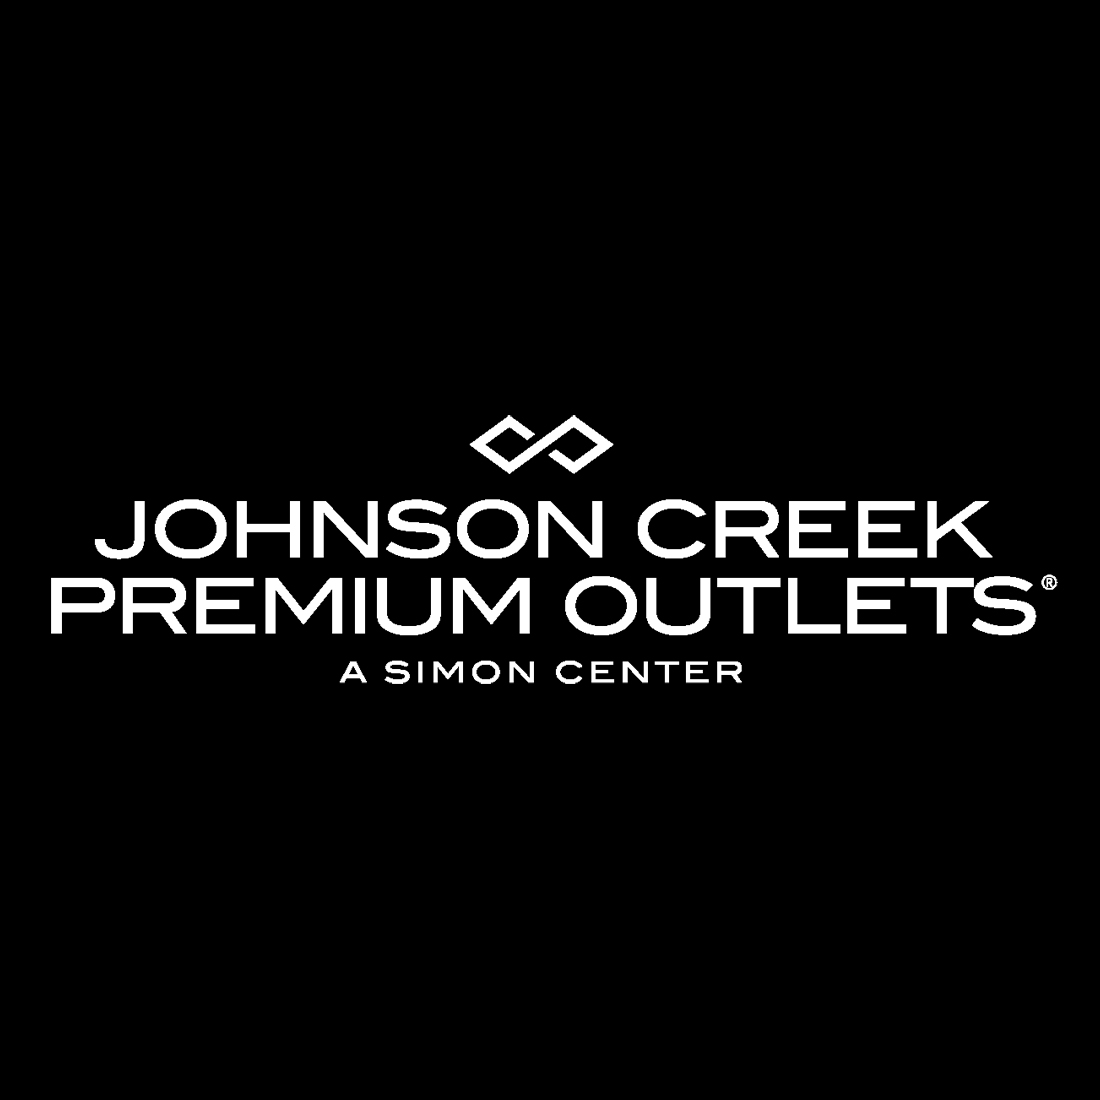 Johnson Creek Premium Outlets image 9